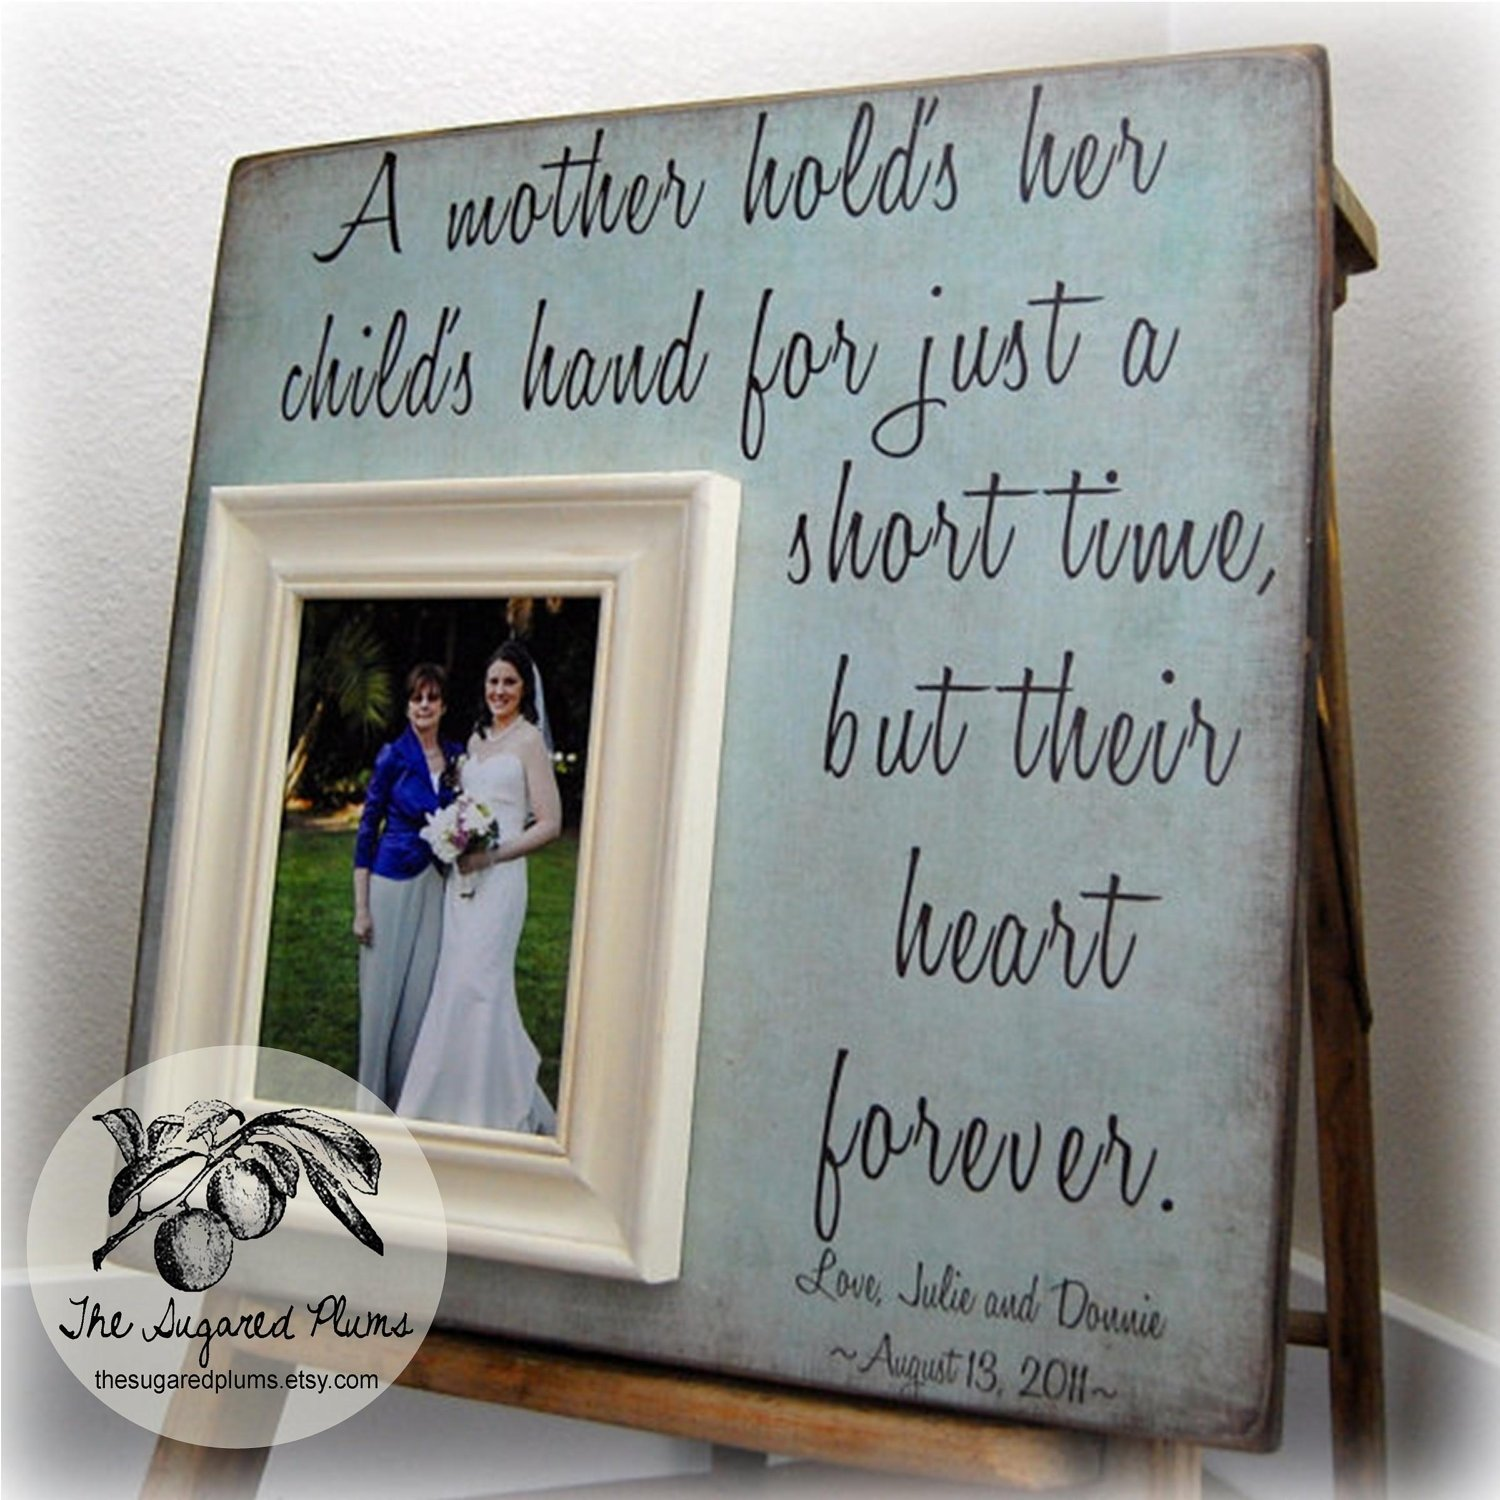 10 Stylish Gift Ideas For Parents Of The Bride And Groom best mother of the bride gifts personalized picture frame a mother 1 2020